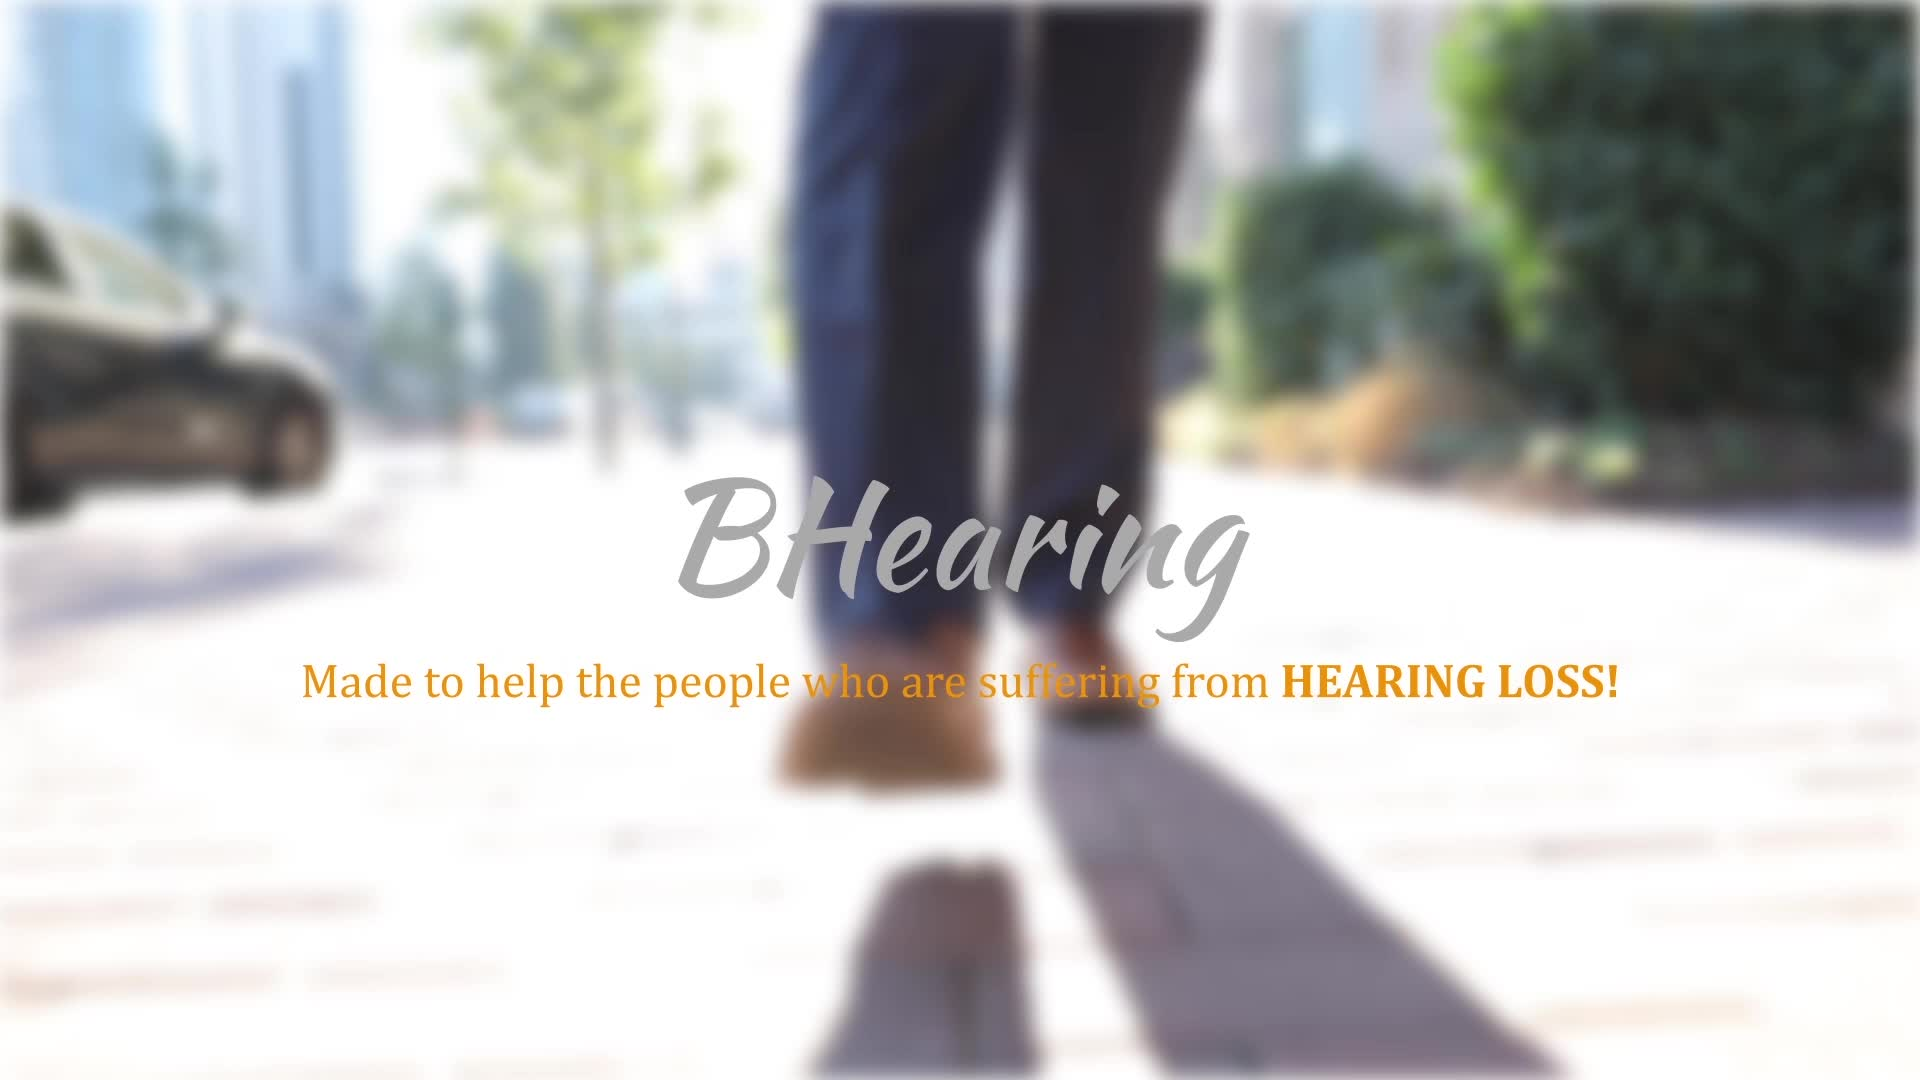 Bluetooth China Hearing Device Self Fitting Personal Sound Amplifier w/ Mobile App for Hearing Test Customs Hearing Profile